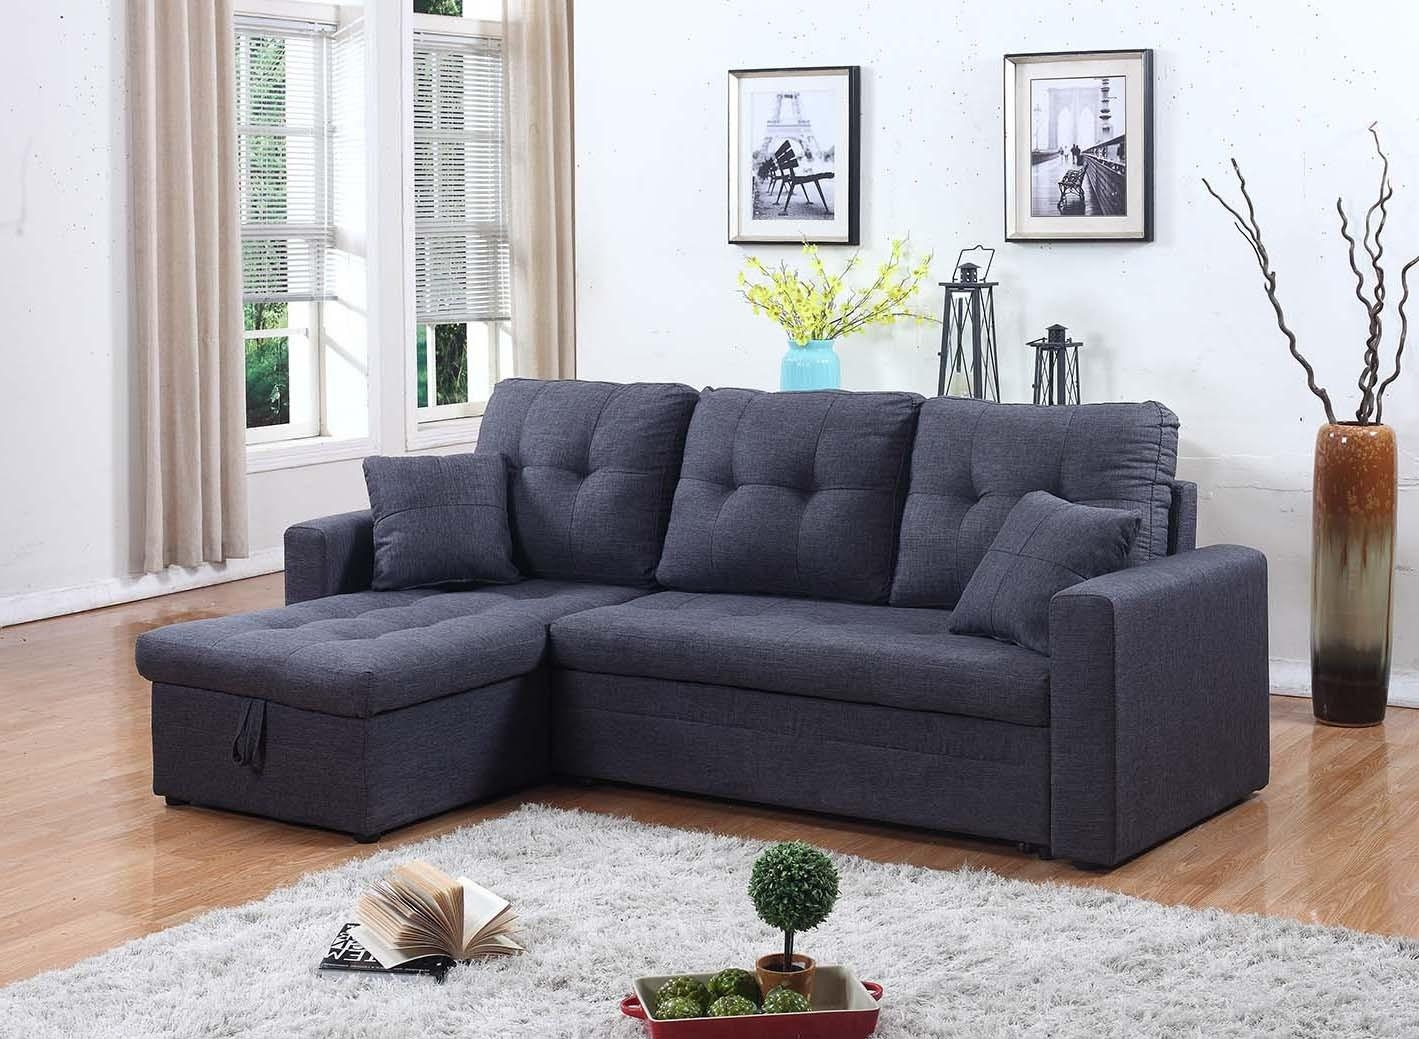 2 Pc Gray Fabric Sectional With Storage Chaise And Pull Out Bed Within Pull Out Sectional (Image 1 of 20)